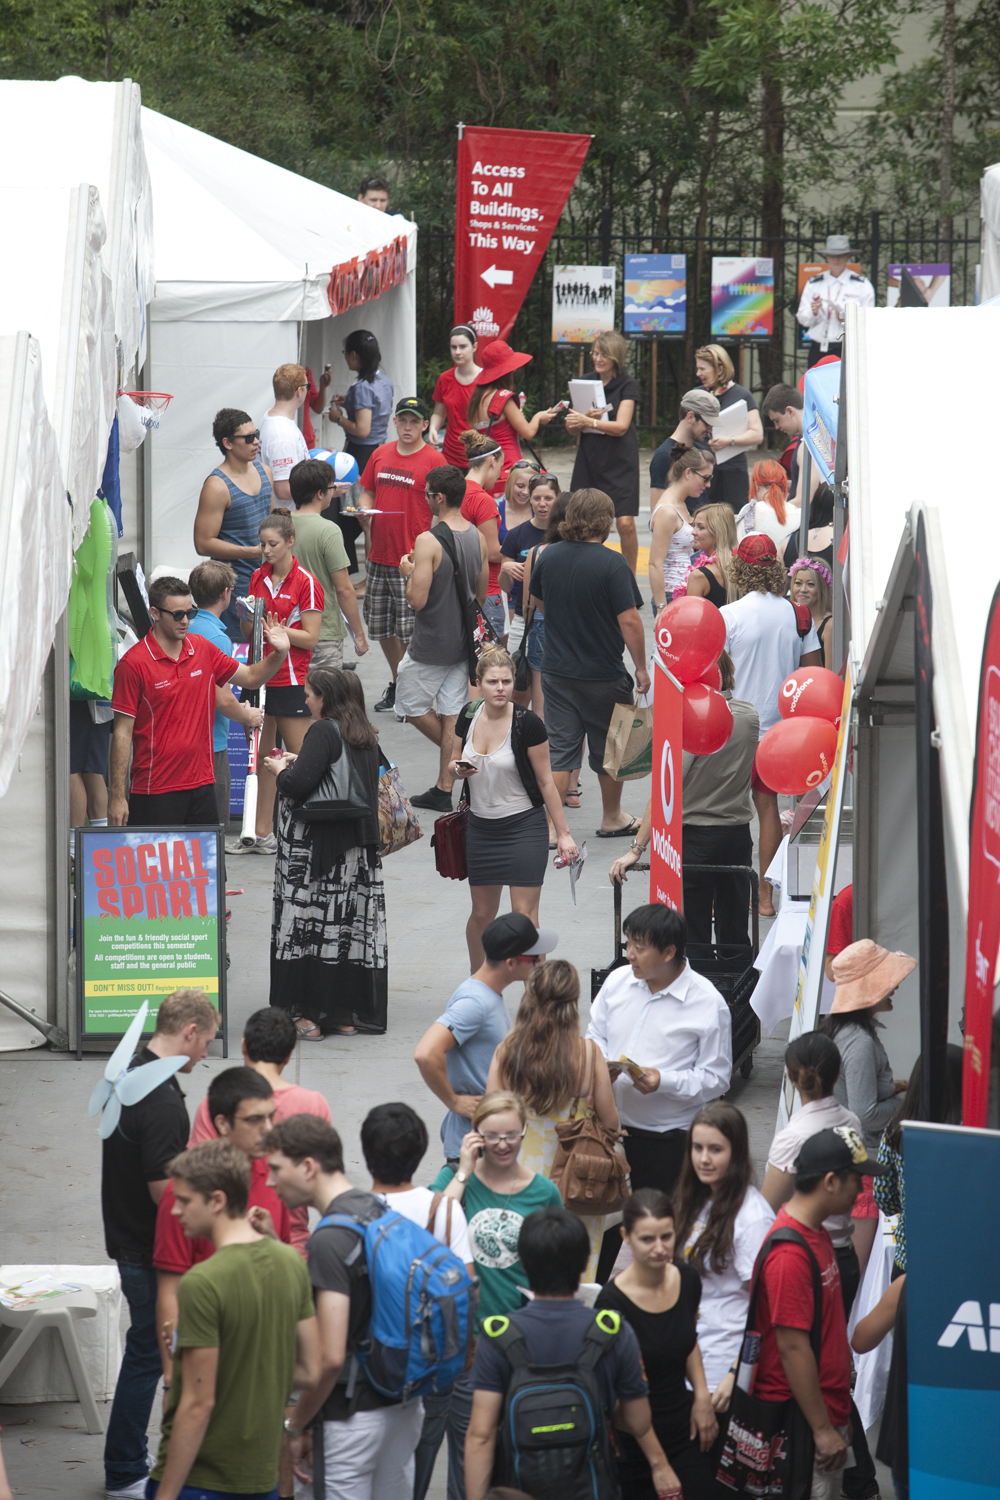 Busy scene on Griffith university campus